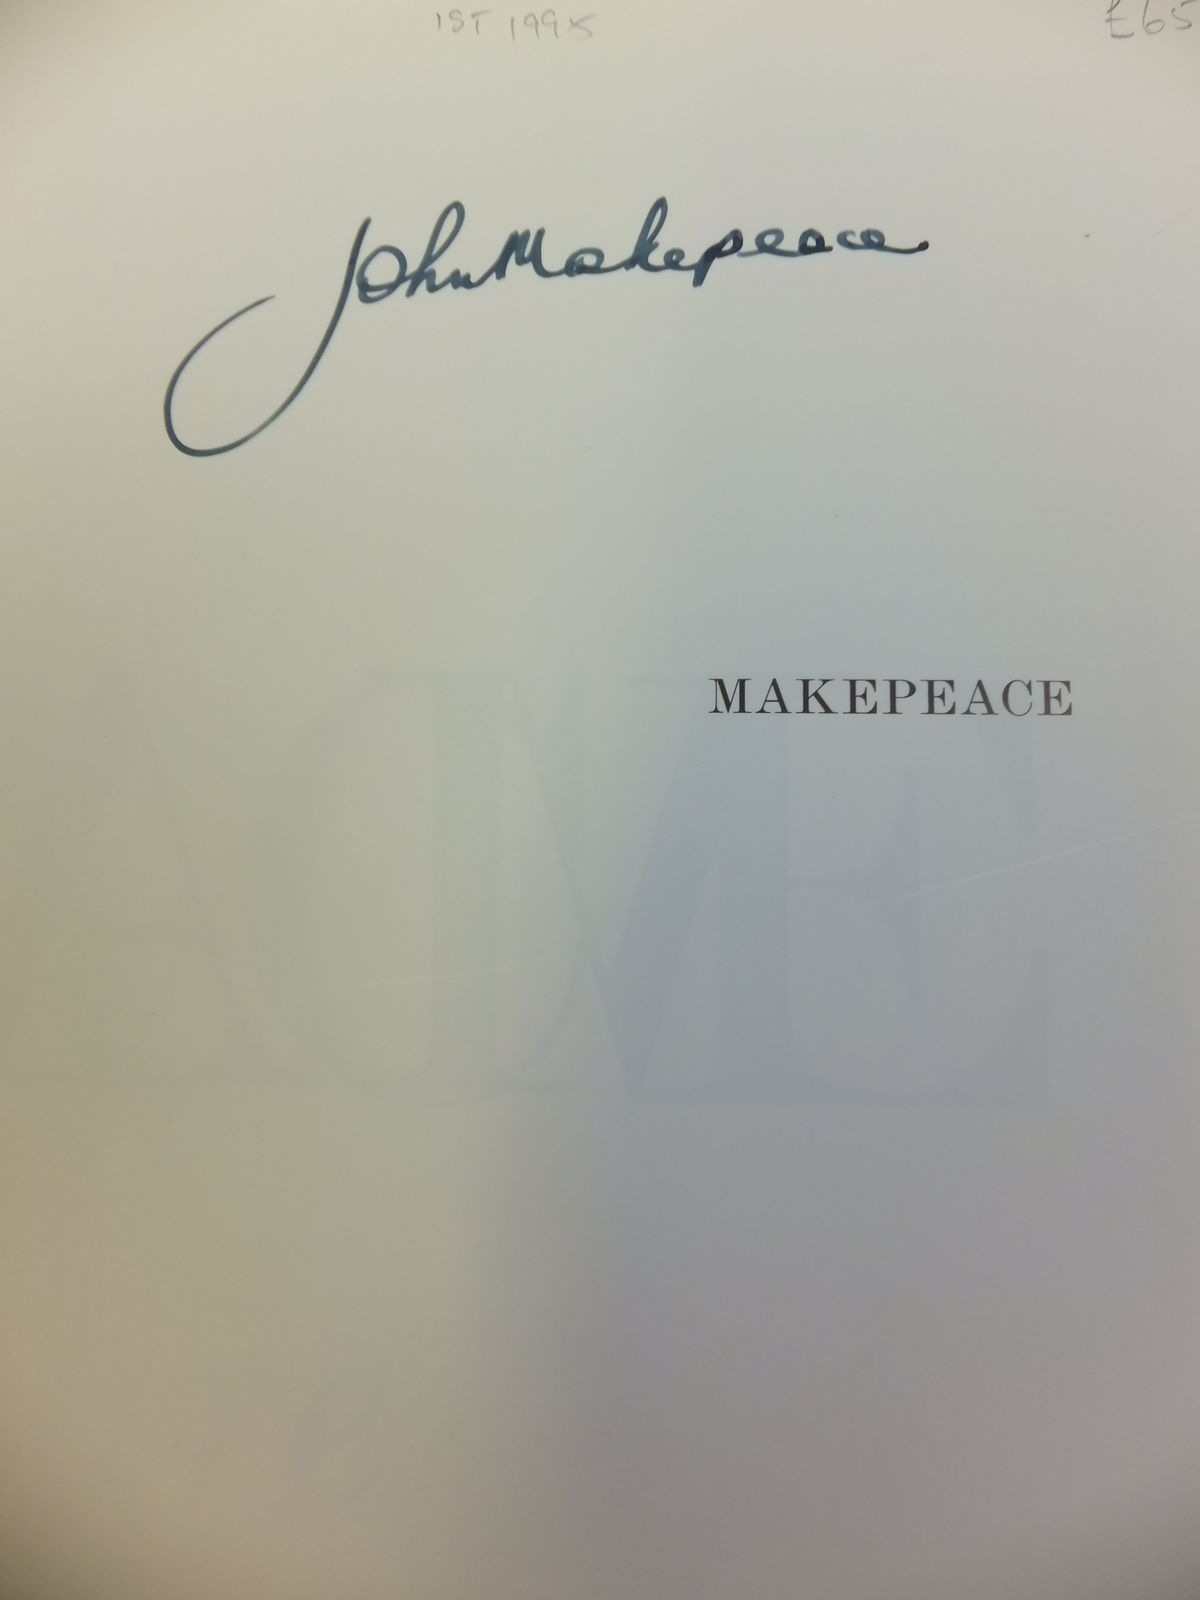 Photo of MAKEPEACE: A SPIRIT OF ADVENTURE IN CRAFT AND DESIGN written by Myerson, Jeremy published by Conran Octopus Limited (STOCK CODE: 1811920)  for sale by Stella & Rose's Books